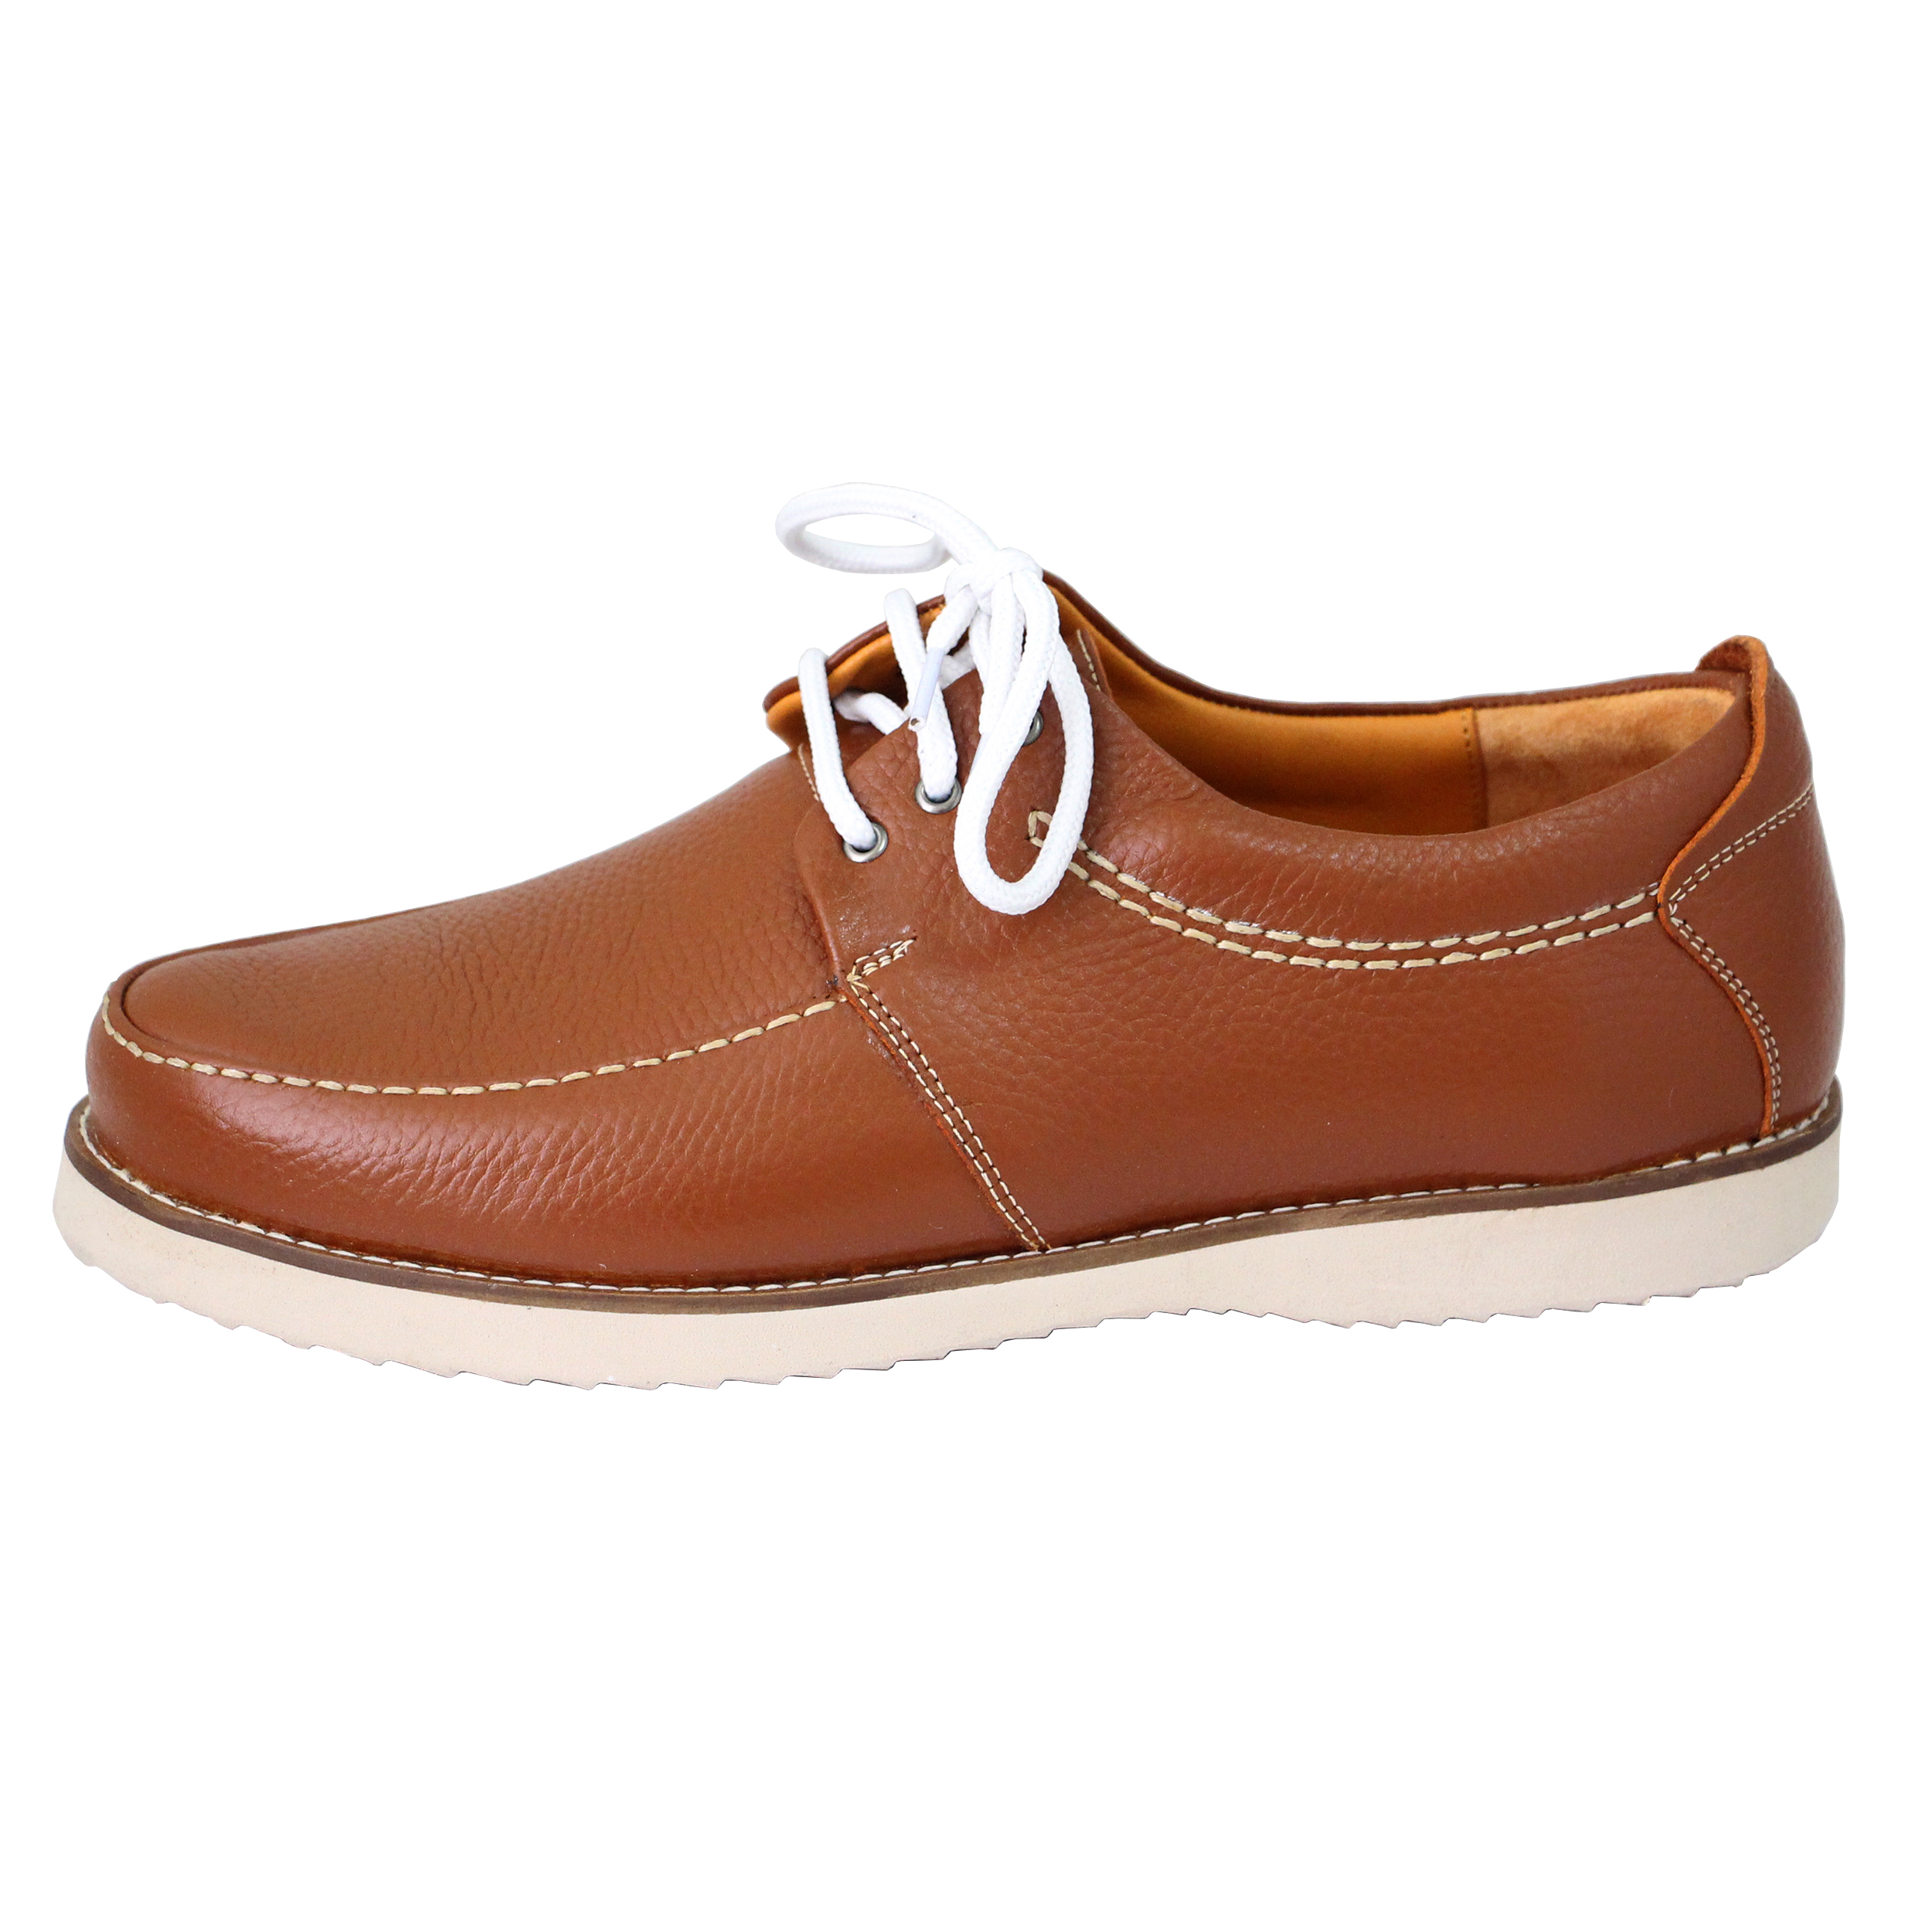 ADINCHARM leather men's casual shoes, DK101.as Model